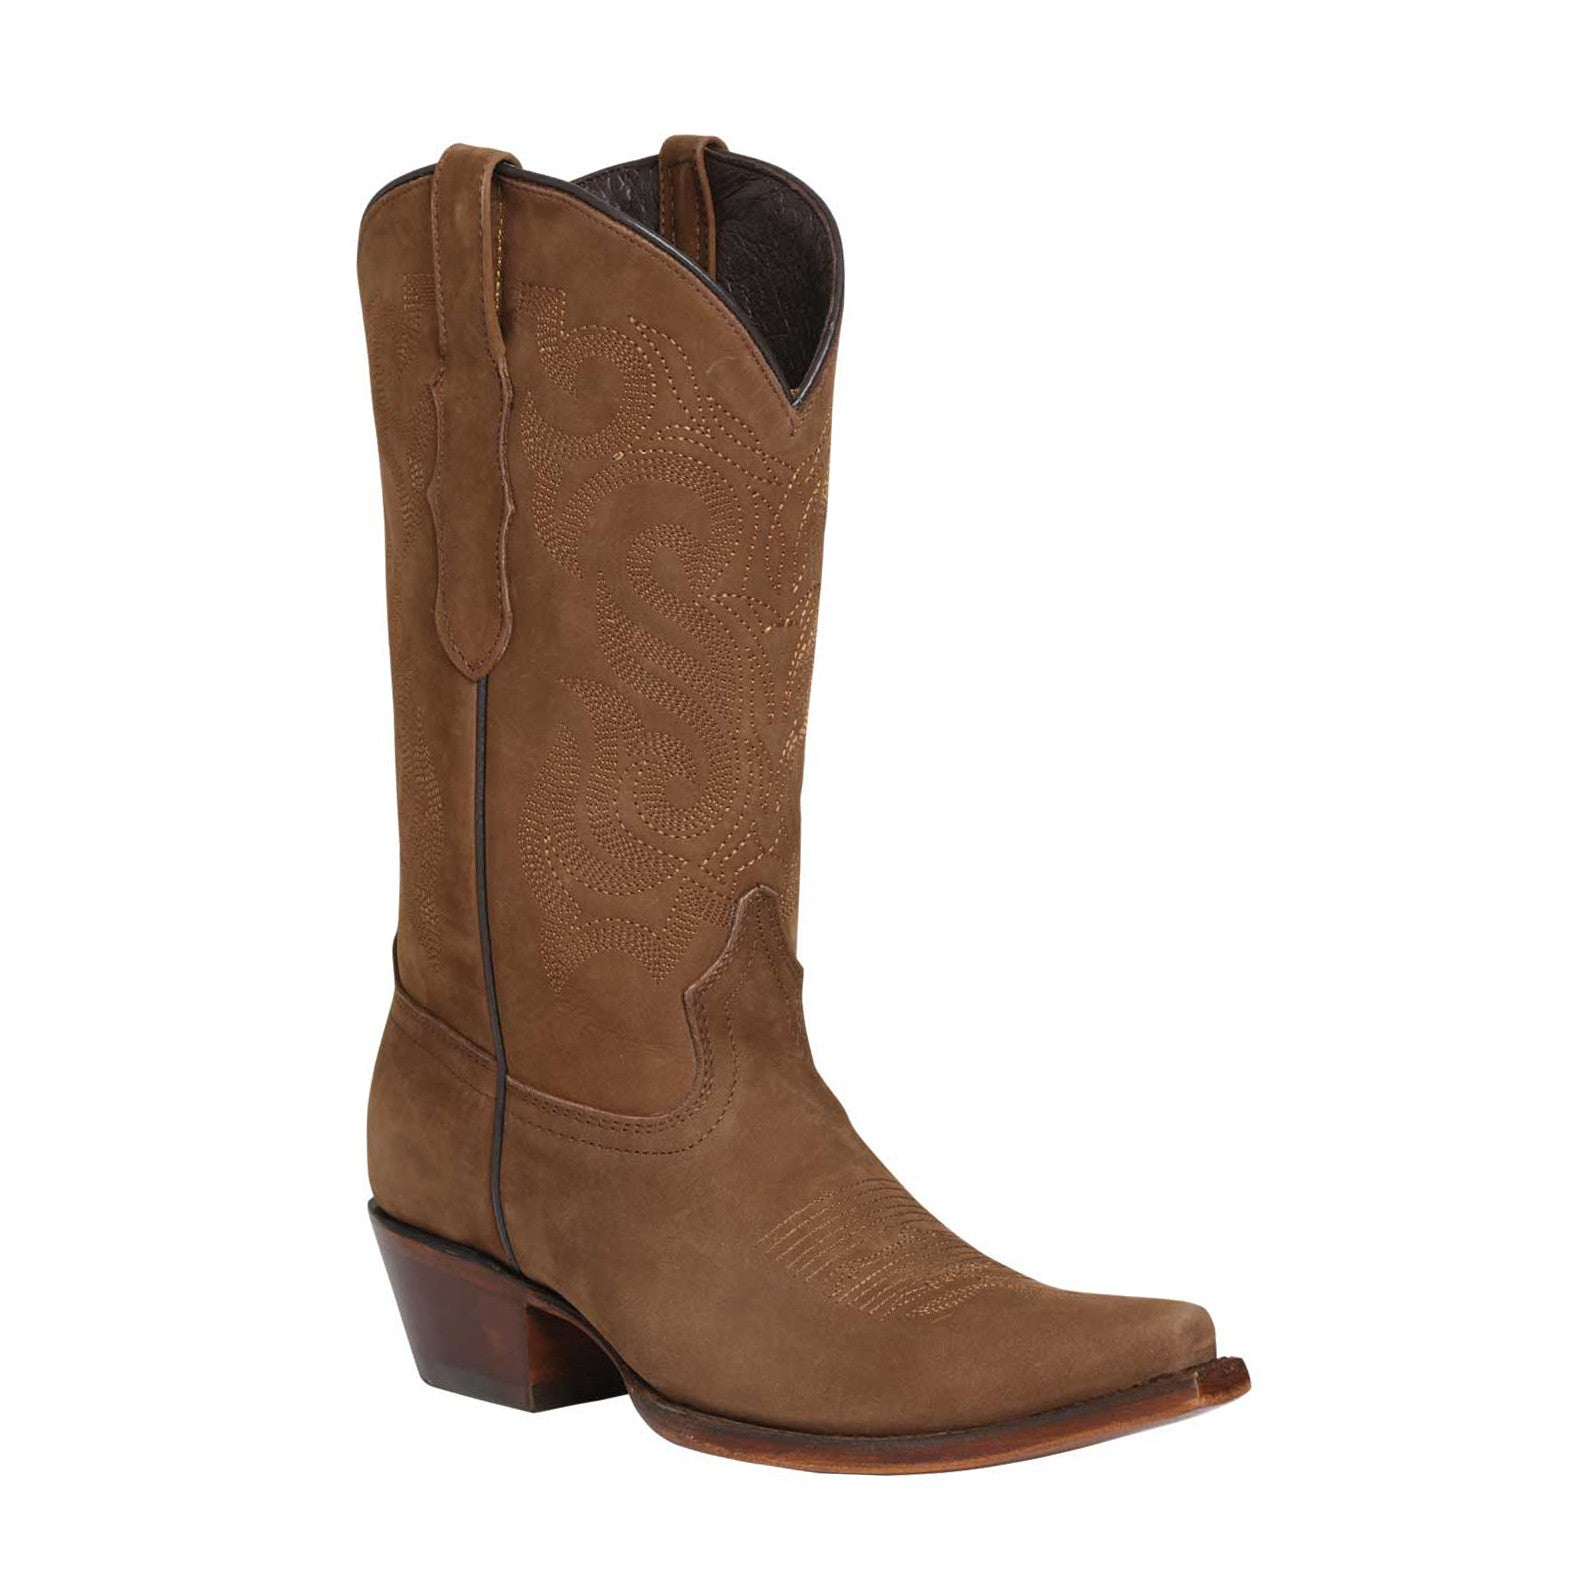 El General Women's Snip Toe Boots